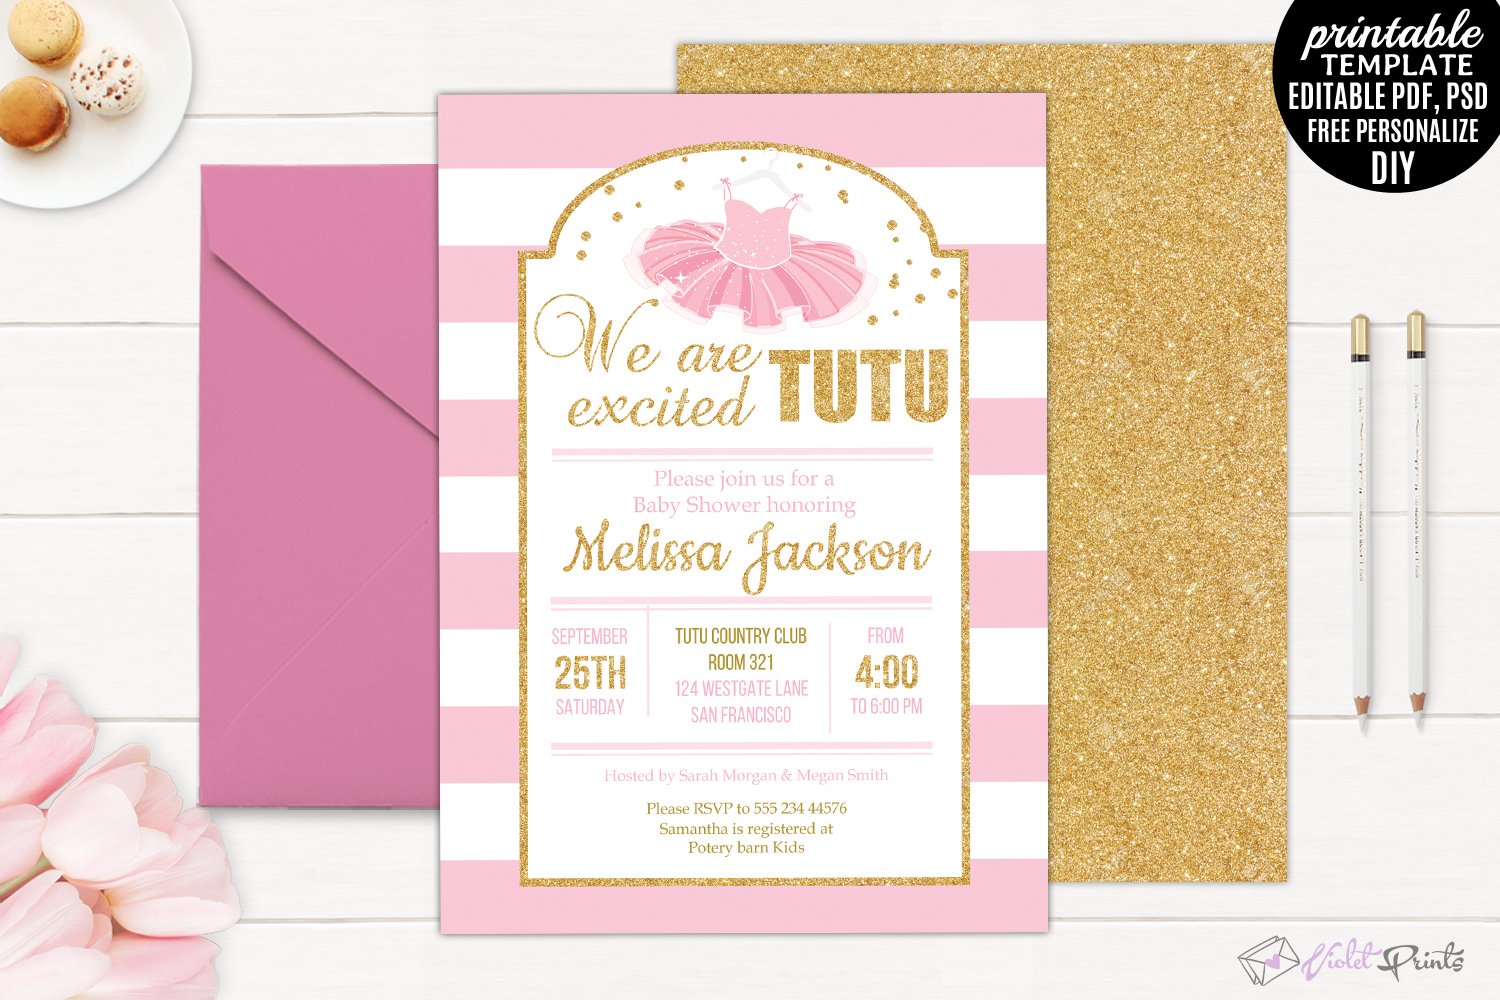 measurements x princess and baby showers ba pink invitations invitation shower ideas throughout gold